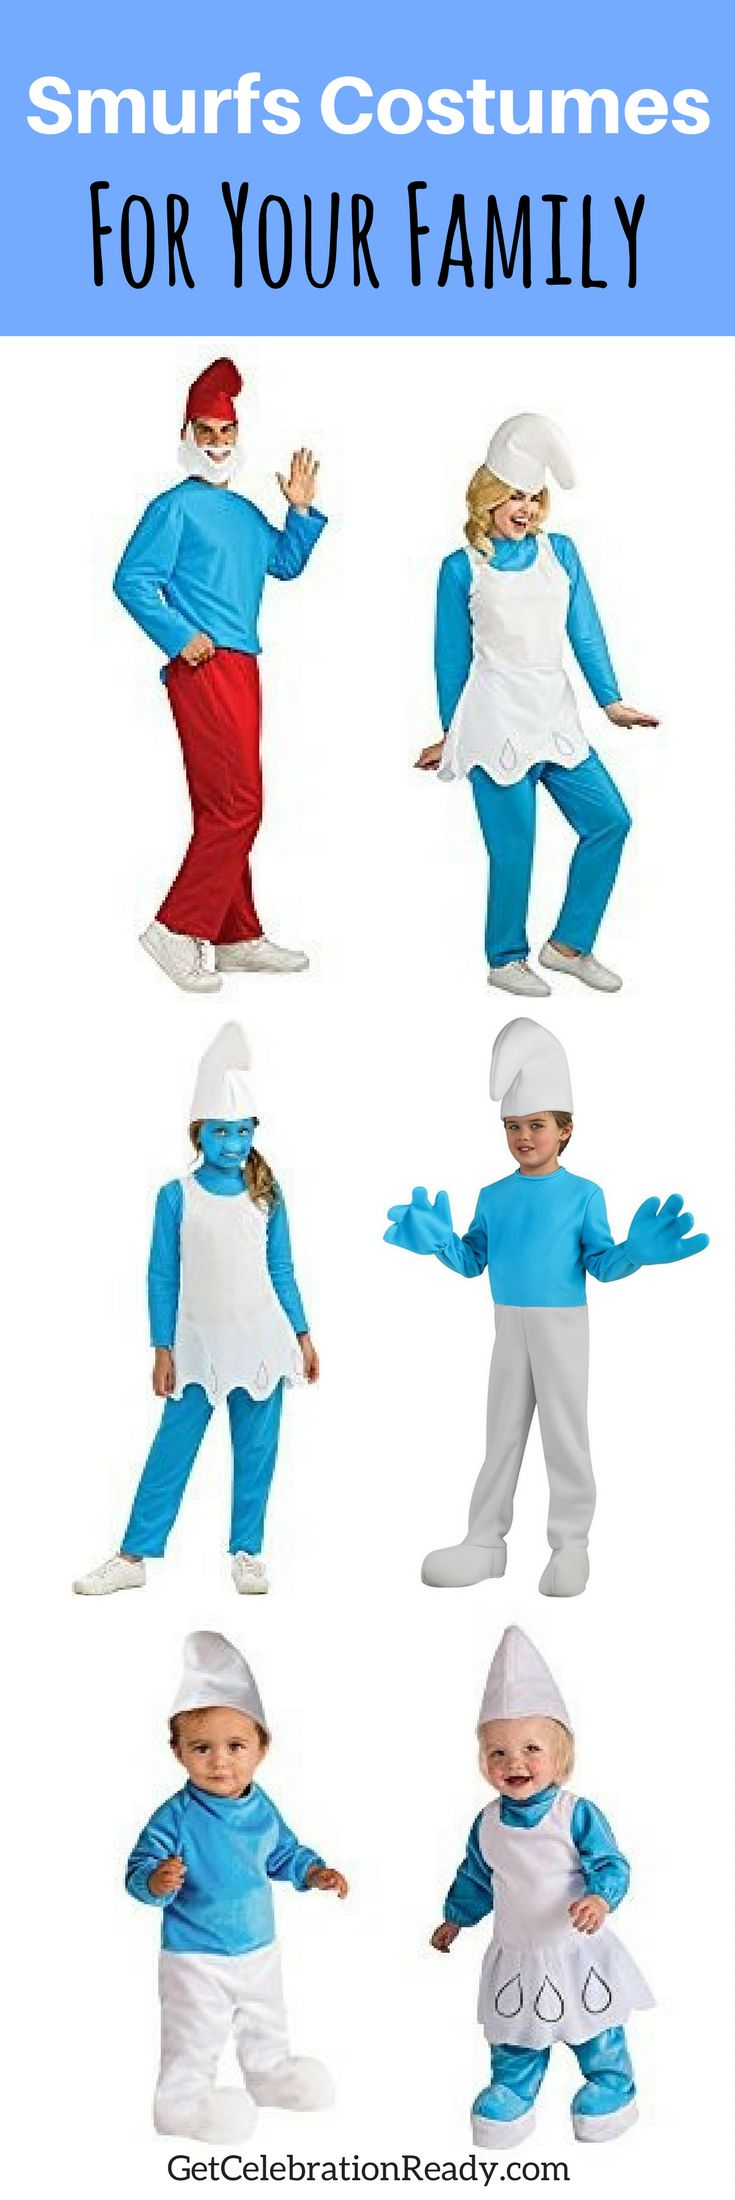 Smurfs are great for kids Halloween costumes. Use Smurfs costumes for the entire family. Kids love the blue hands and the white hats. So much fun.